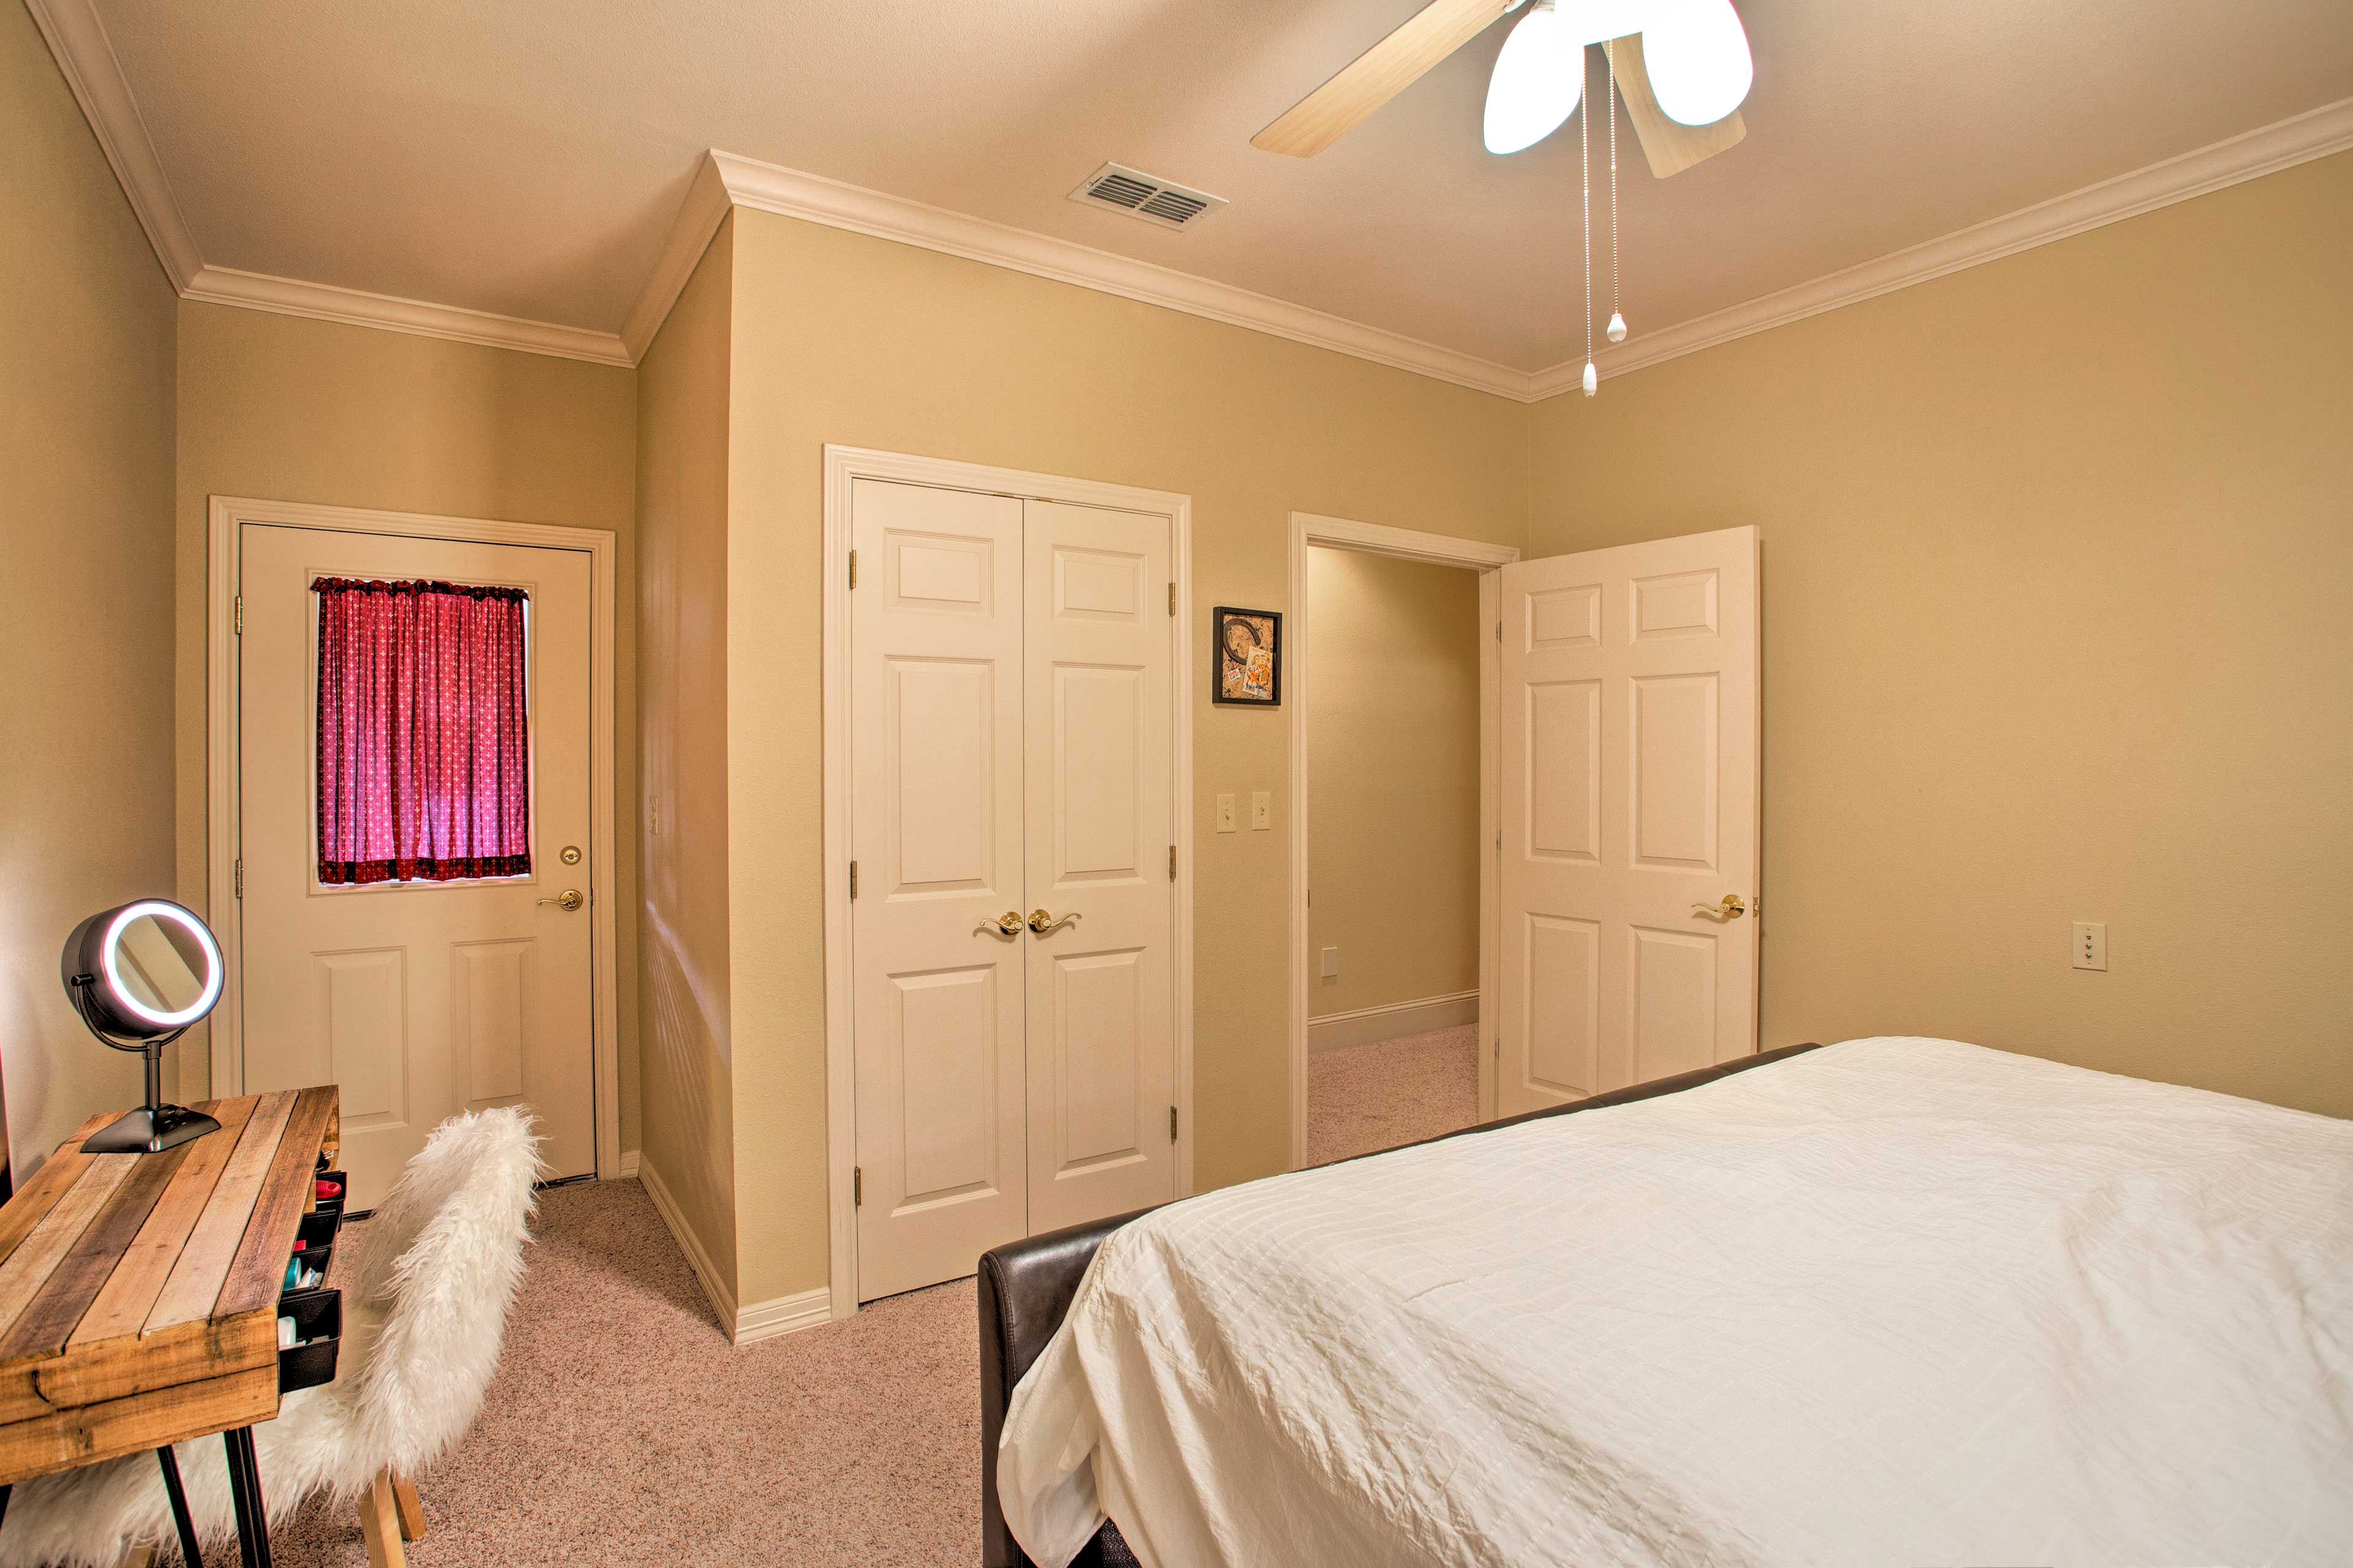 Additional sleeping is available in the media room using the pullout beds.